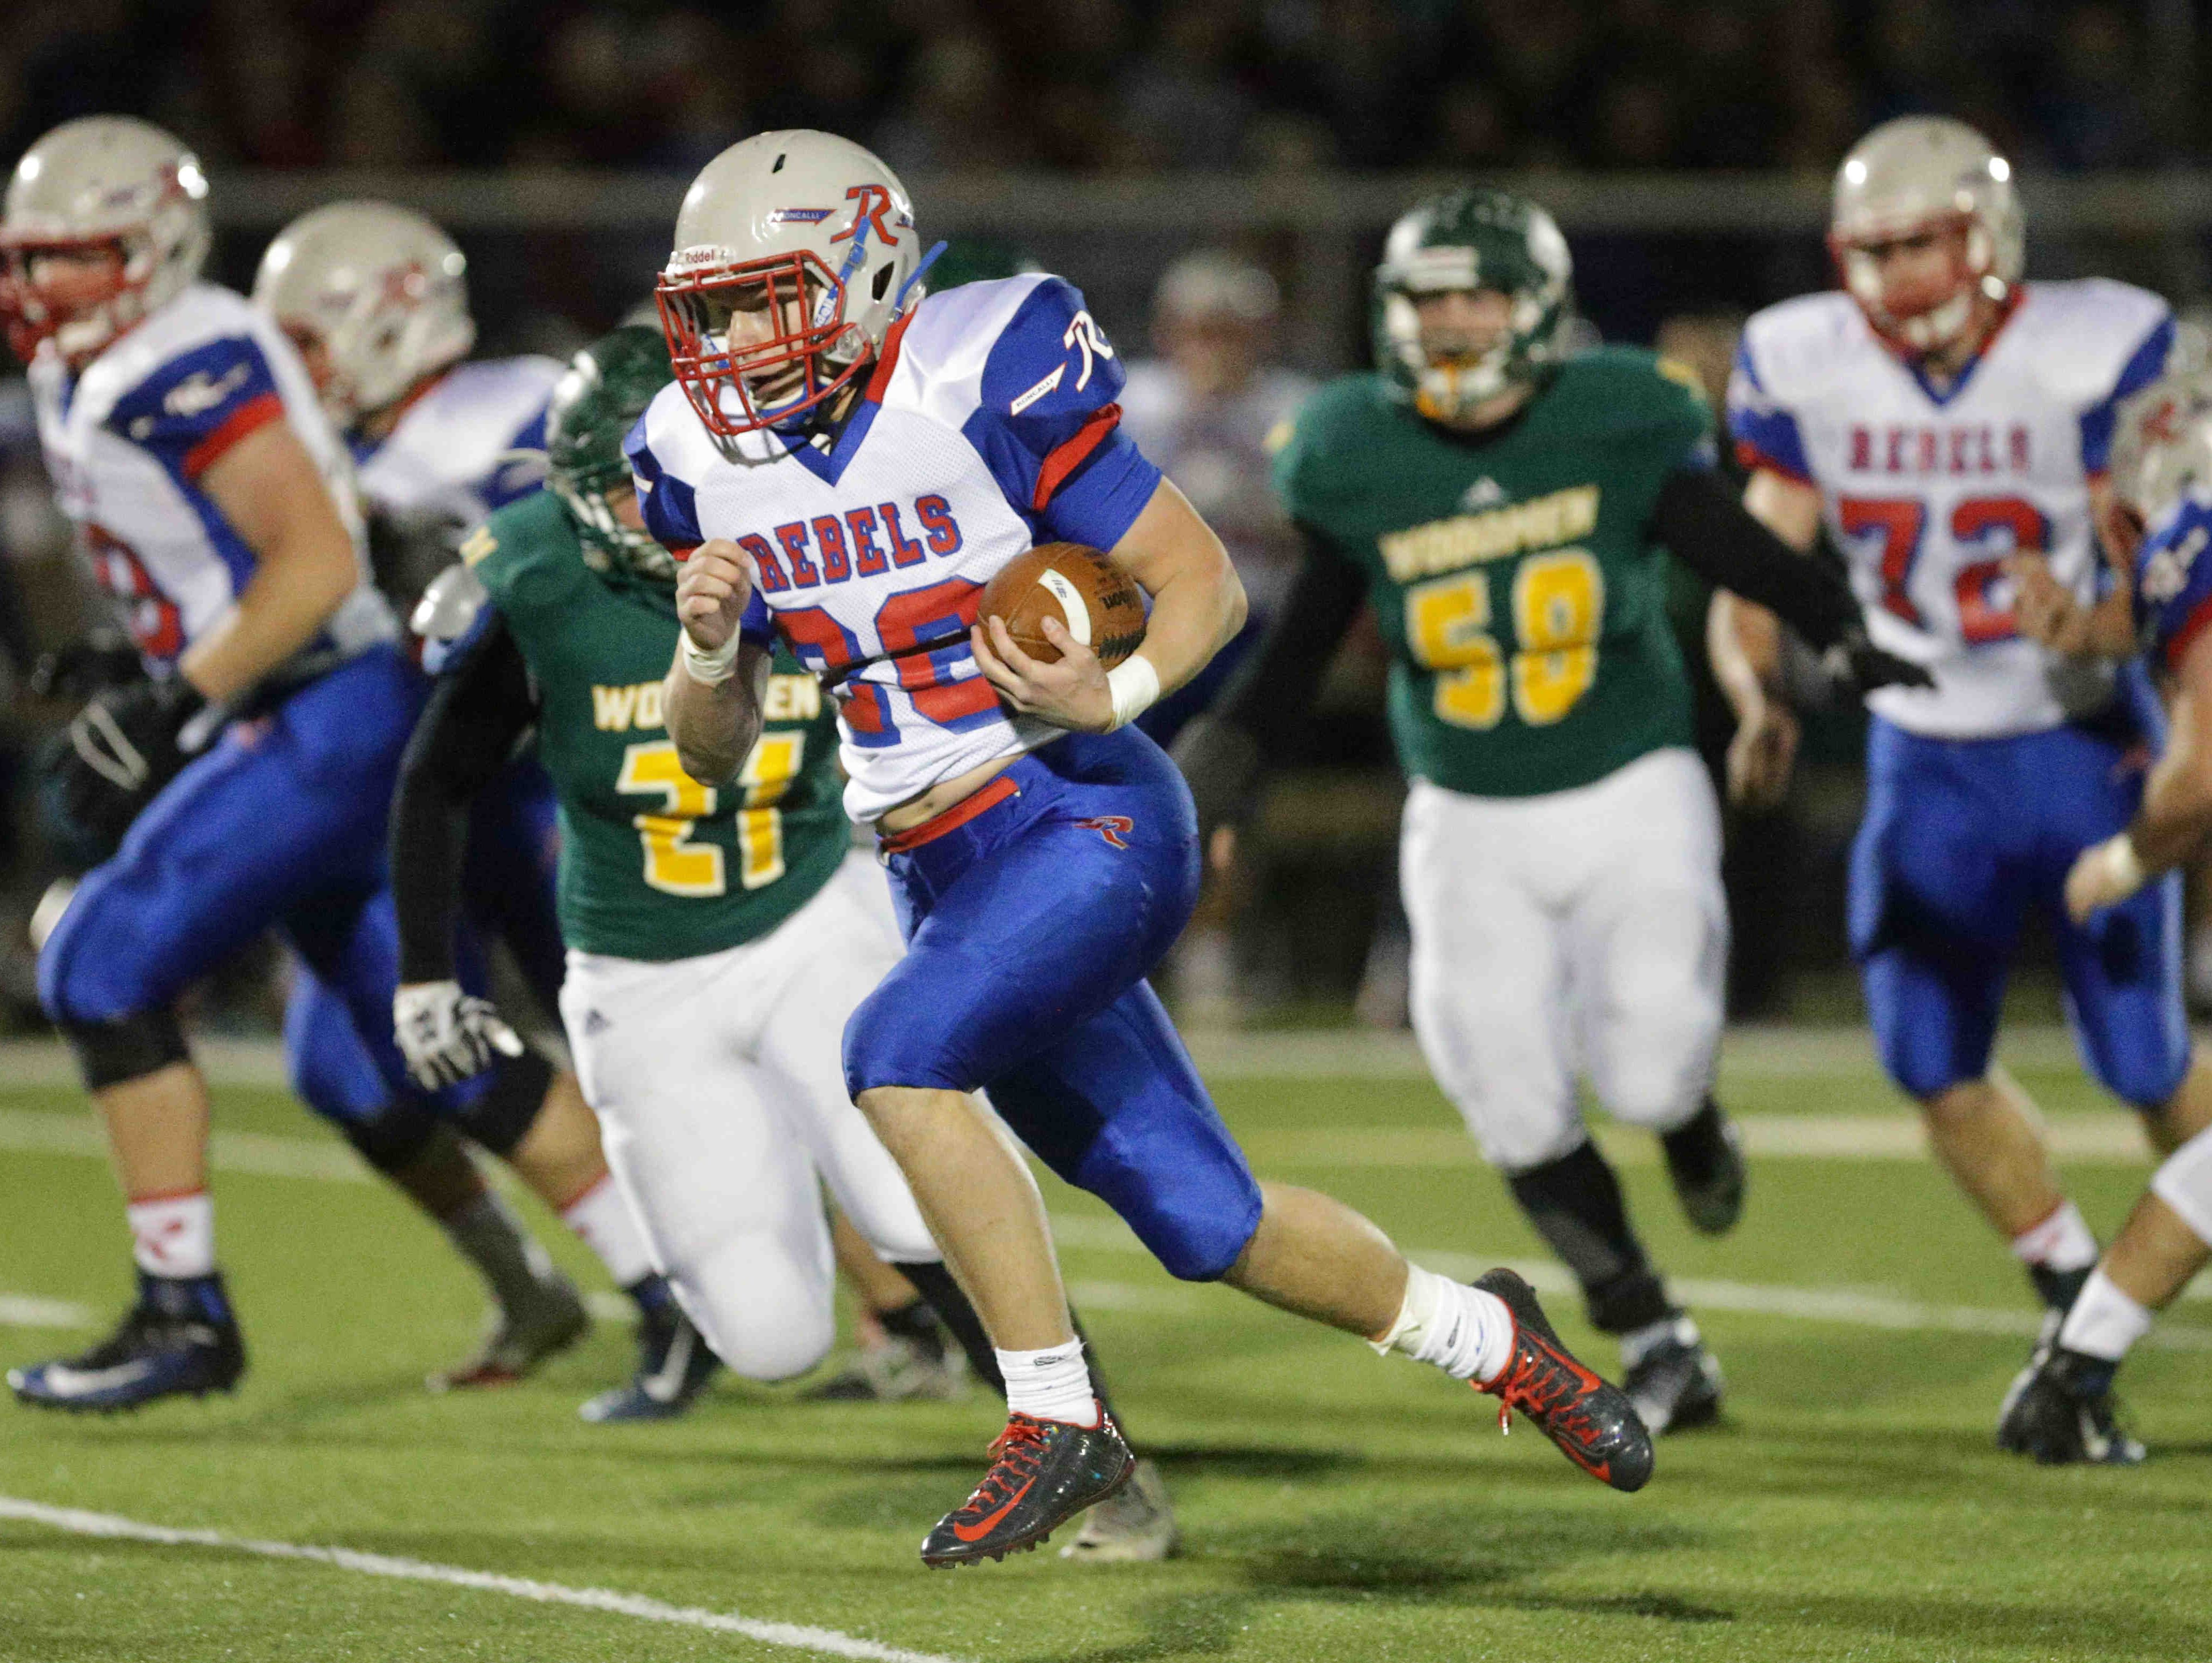 Roncalli's No. 26, Patrick McManama carries the ball, as Greenwood Community High School takes on Roncalli High School at Greenwood, Friday November 4th, 2016.